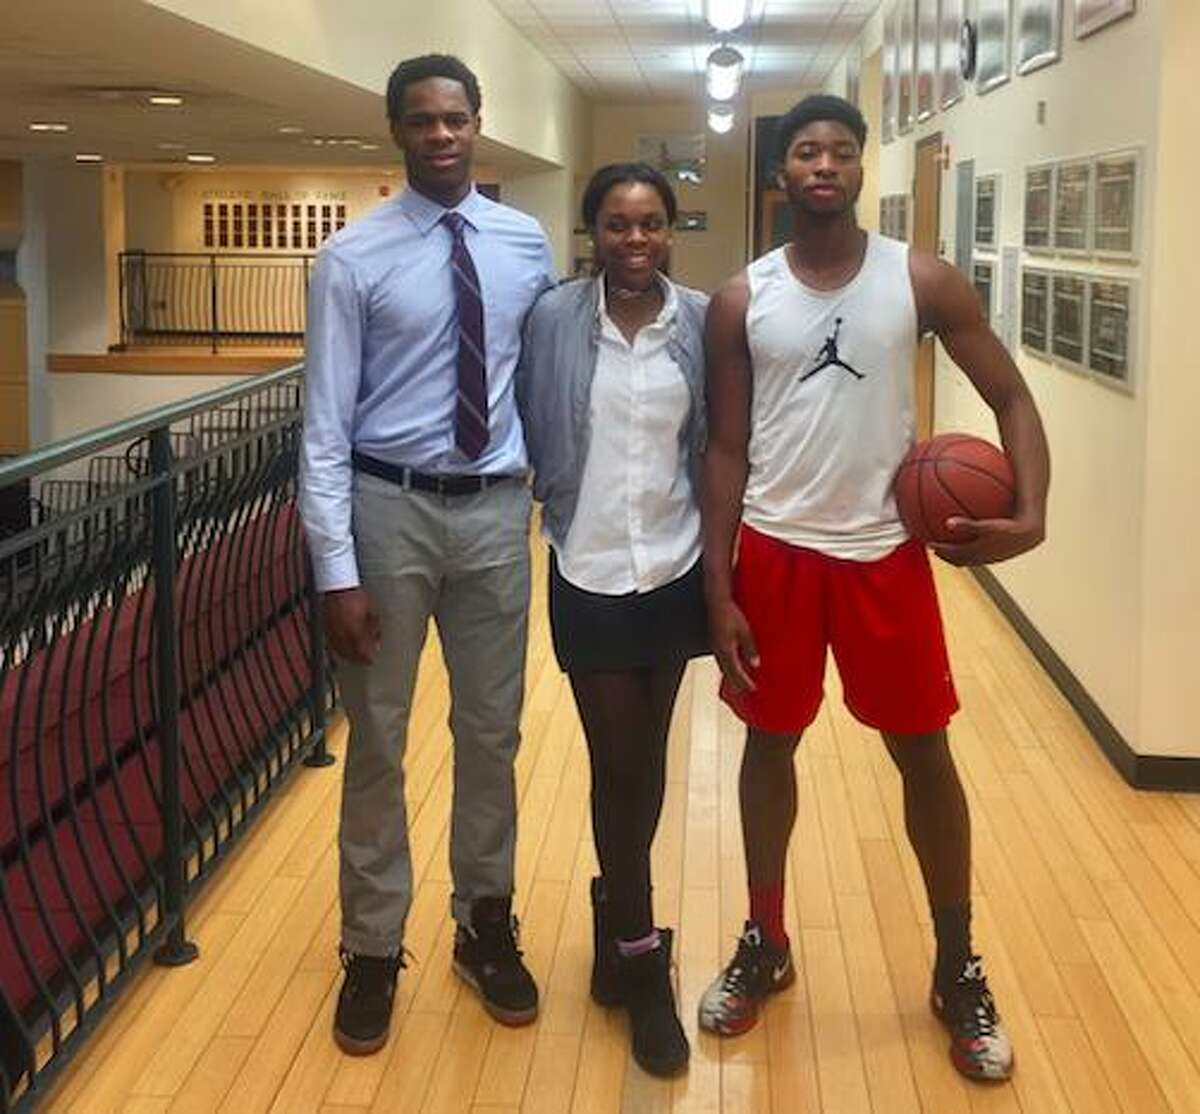 St. Luke's Walter Whyte, Syndey Lowery and Joel Boyce are among the Connecticut nominees for the McDonald's All-America game.